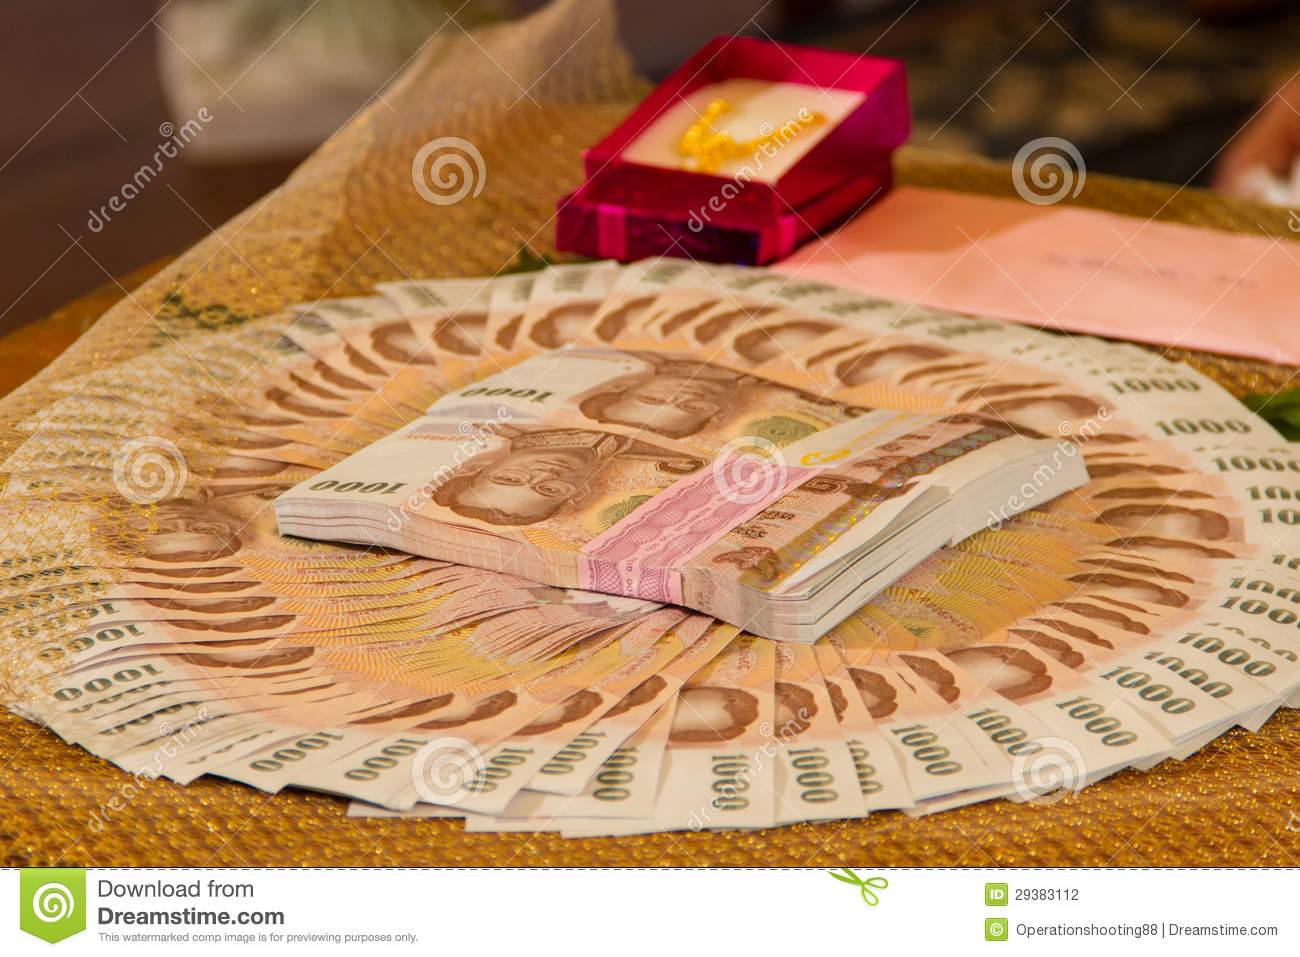 marriage and dowry The dowry system in india refers to the durable goods, cash, and real or movable property that the bride's family gives to the bridegroom, his parents, or his relatives as a condition of the.